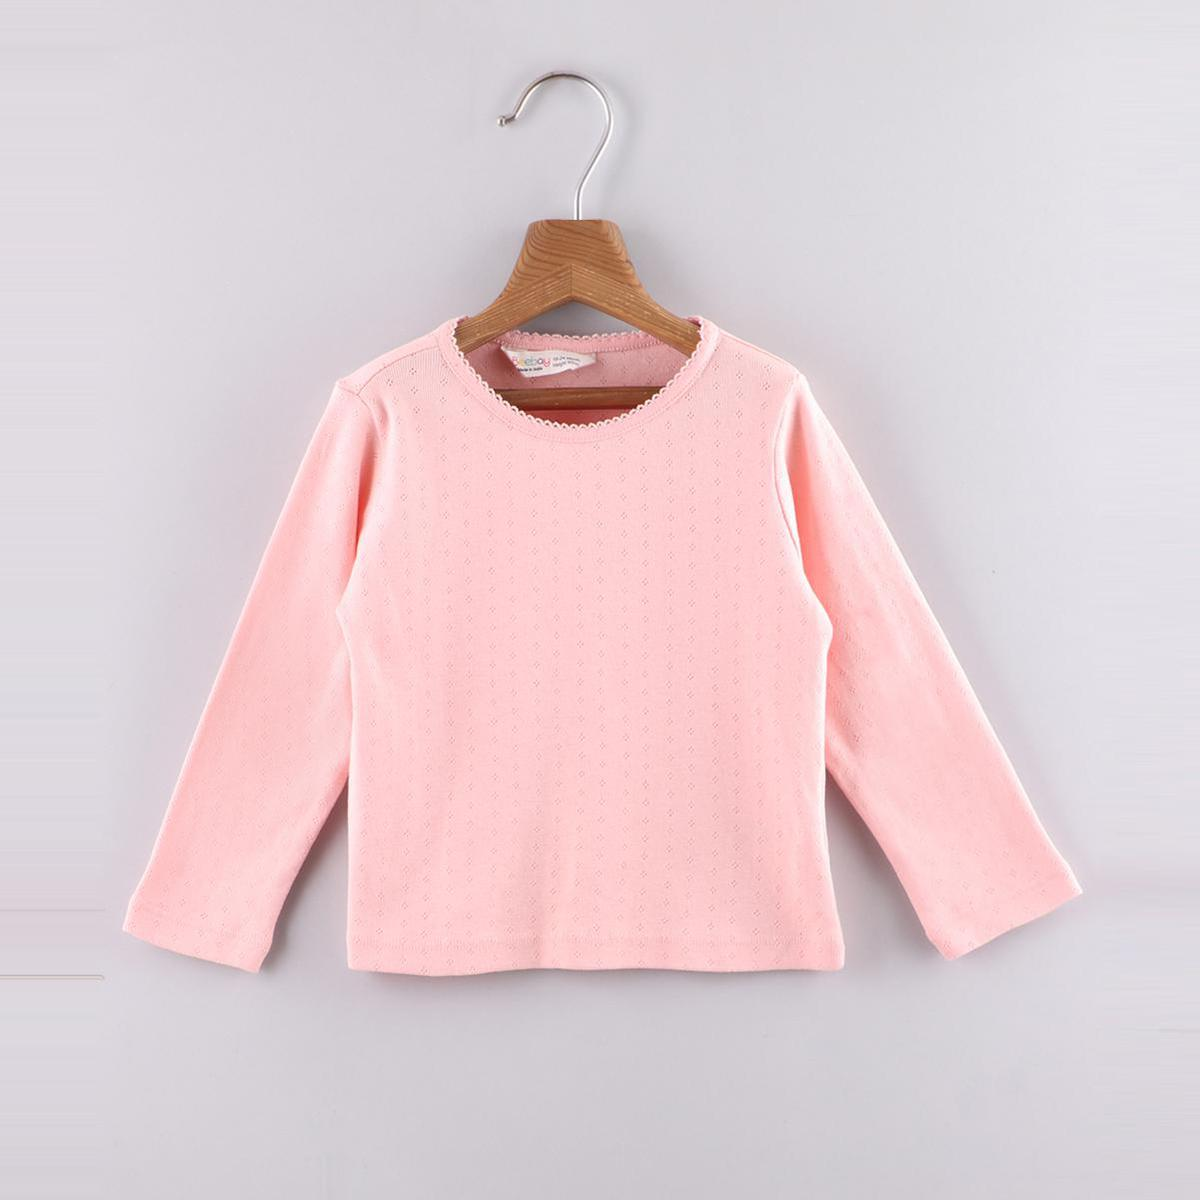 Beebay Dusty (Pink) Pointelle T-Shirt (Pink)